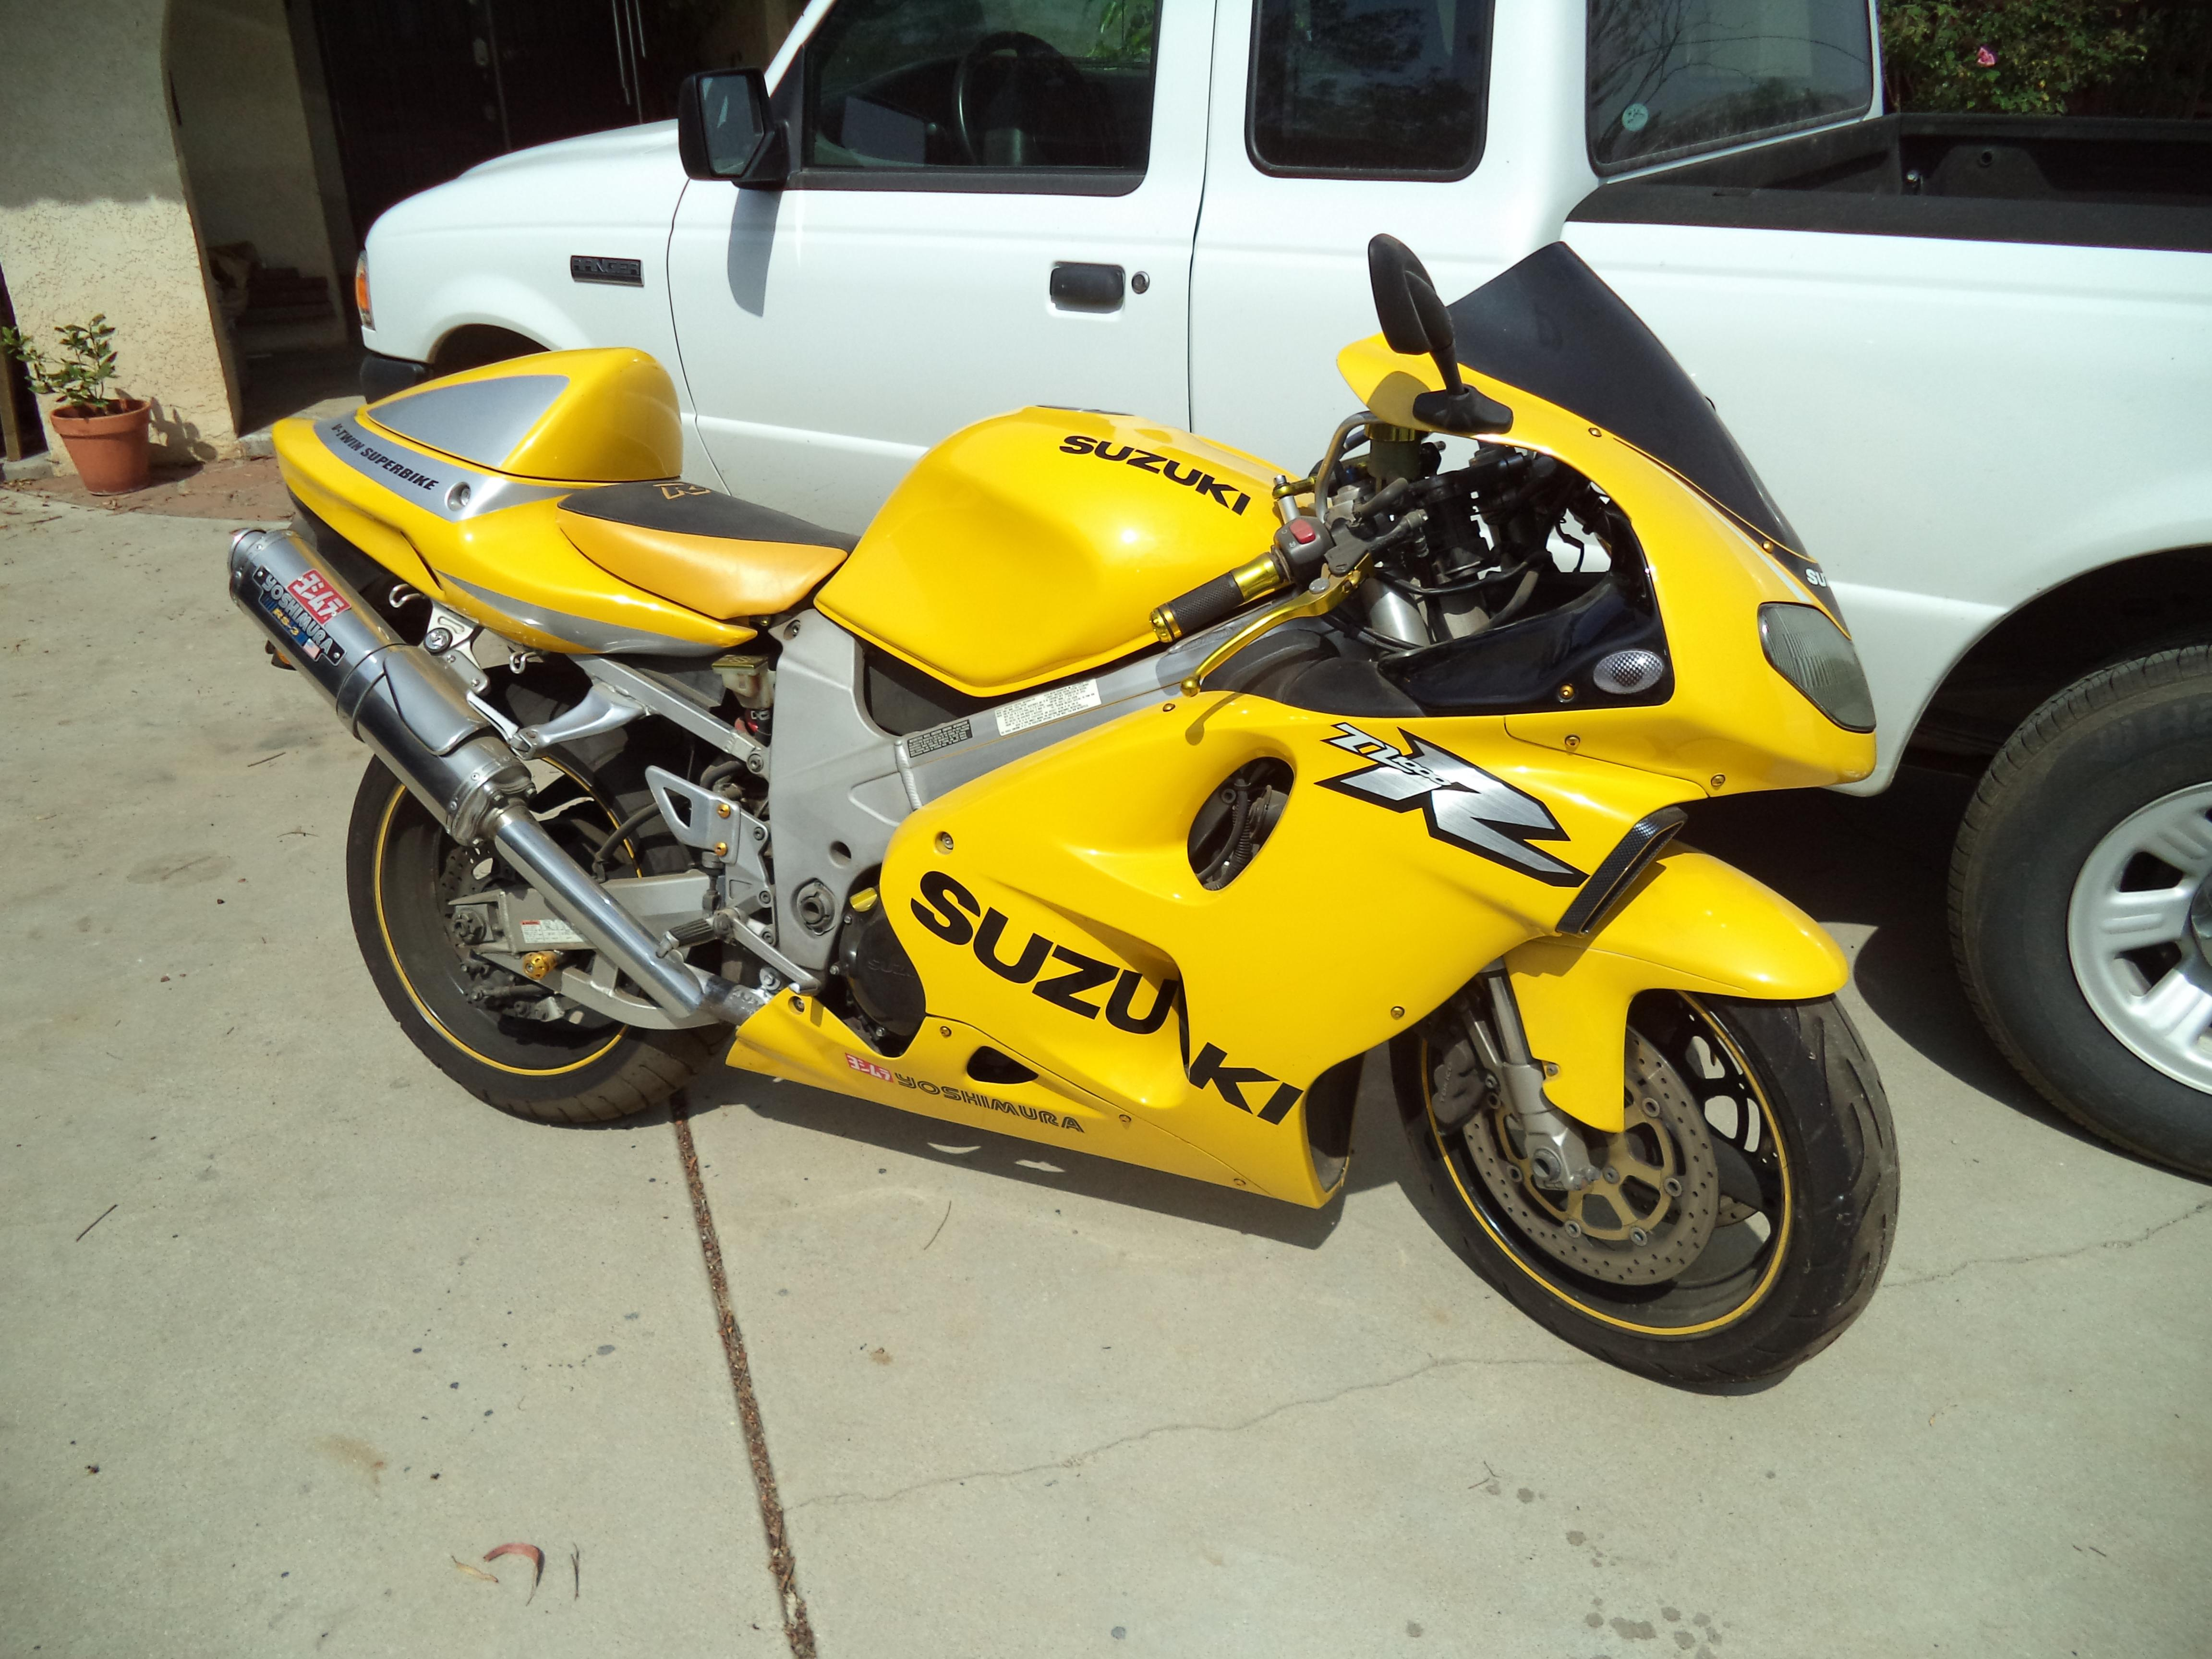 2000 TLR1000R for sale-dsc00230.jpg